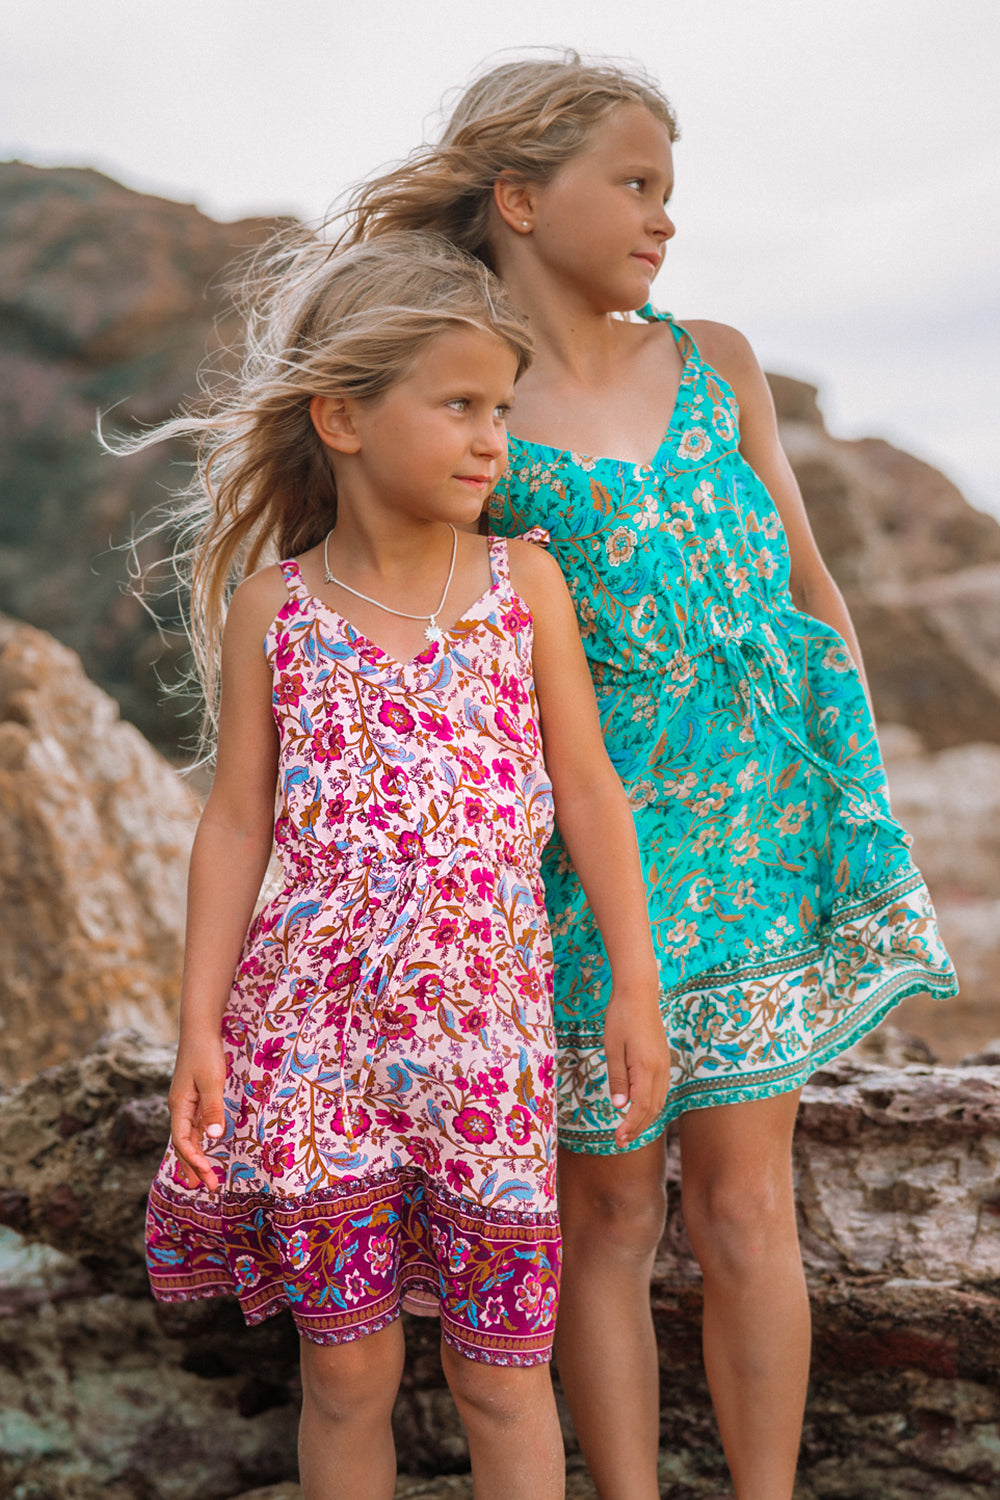 Daisy Chain Littles Dress in Candy